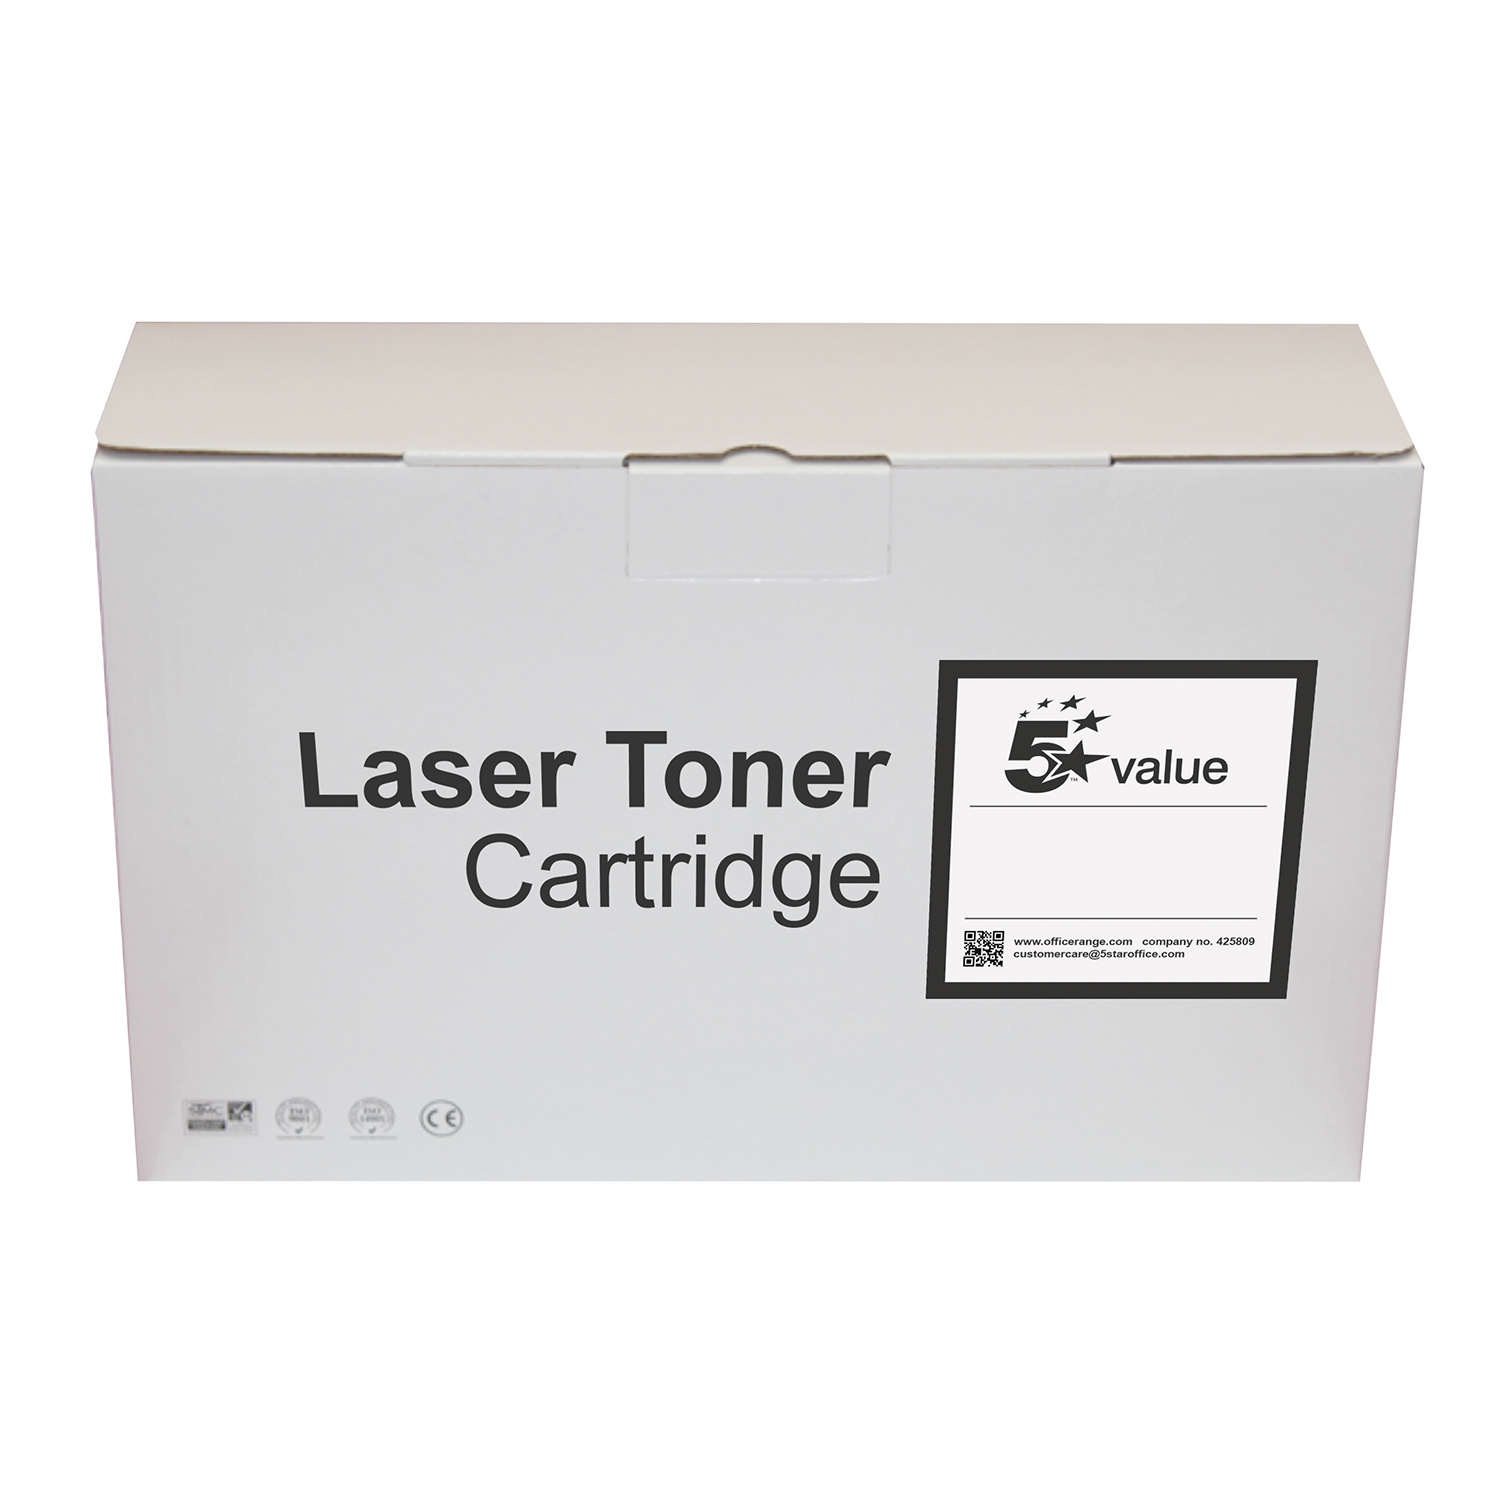 5 Star Value Remanufactured Laser Toner Cartridge 2400pp Black HP No. 131X CF210X Alternative